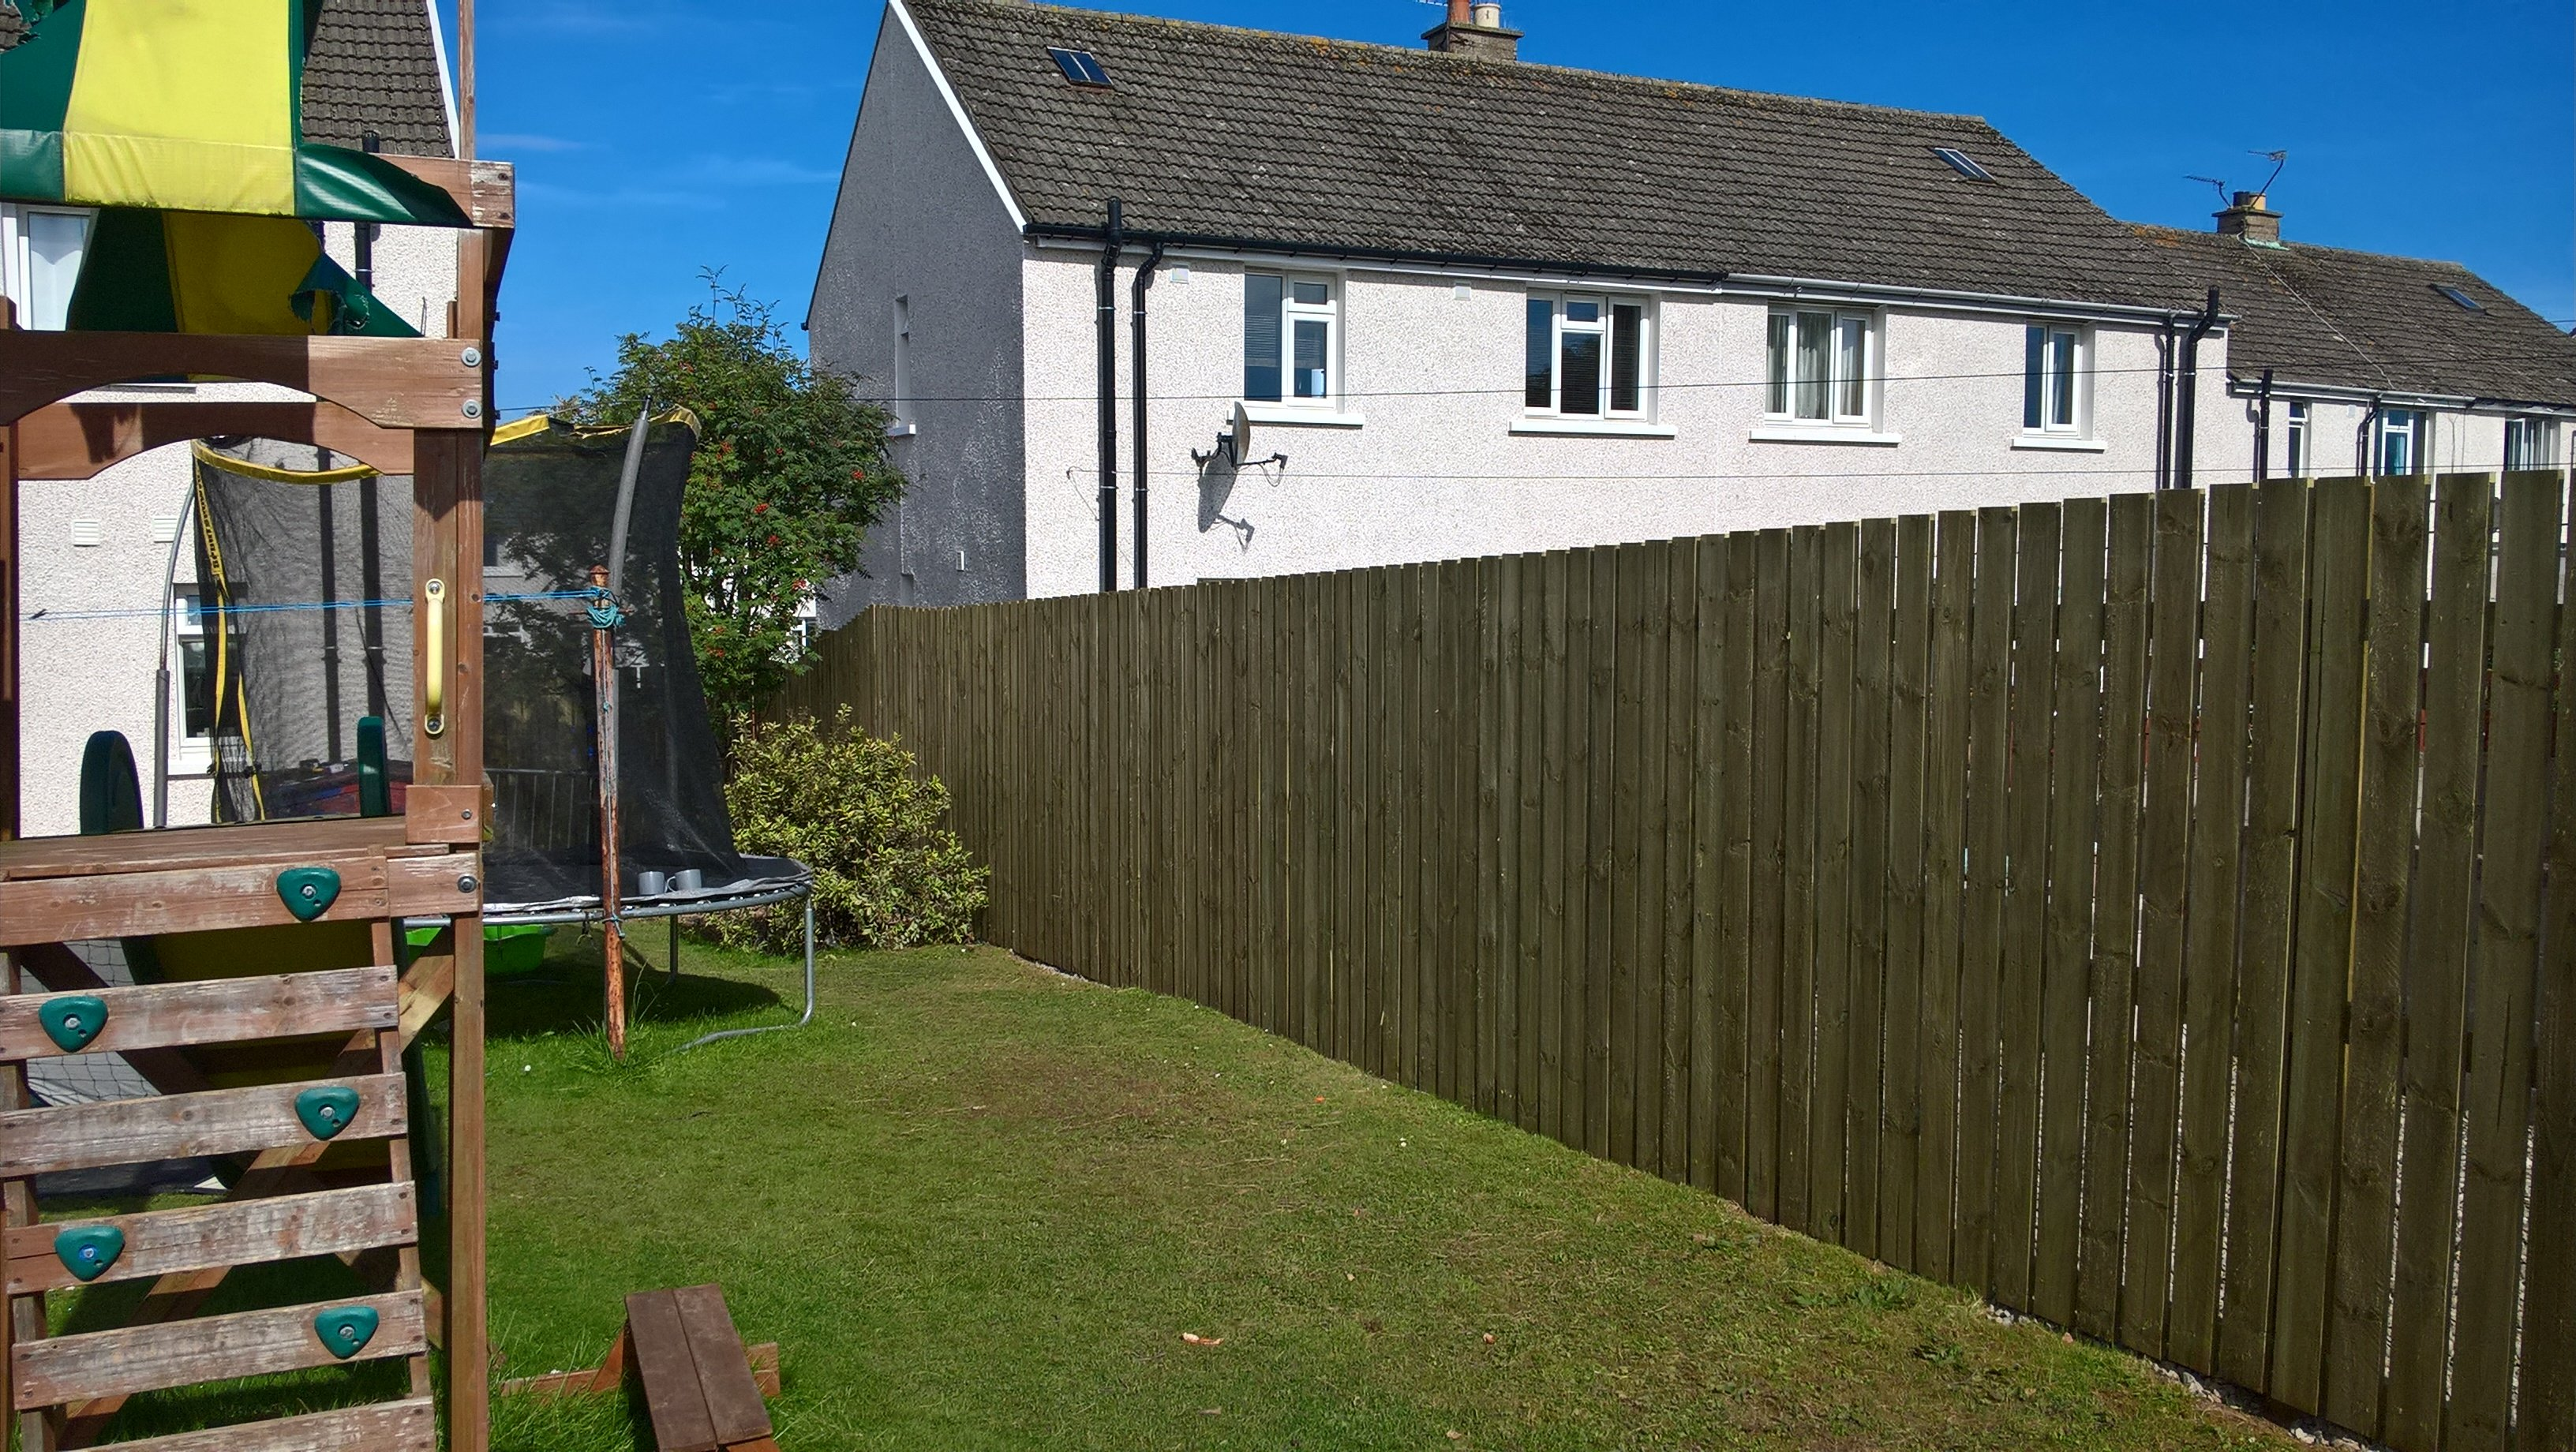 6ft Fencing